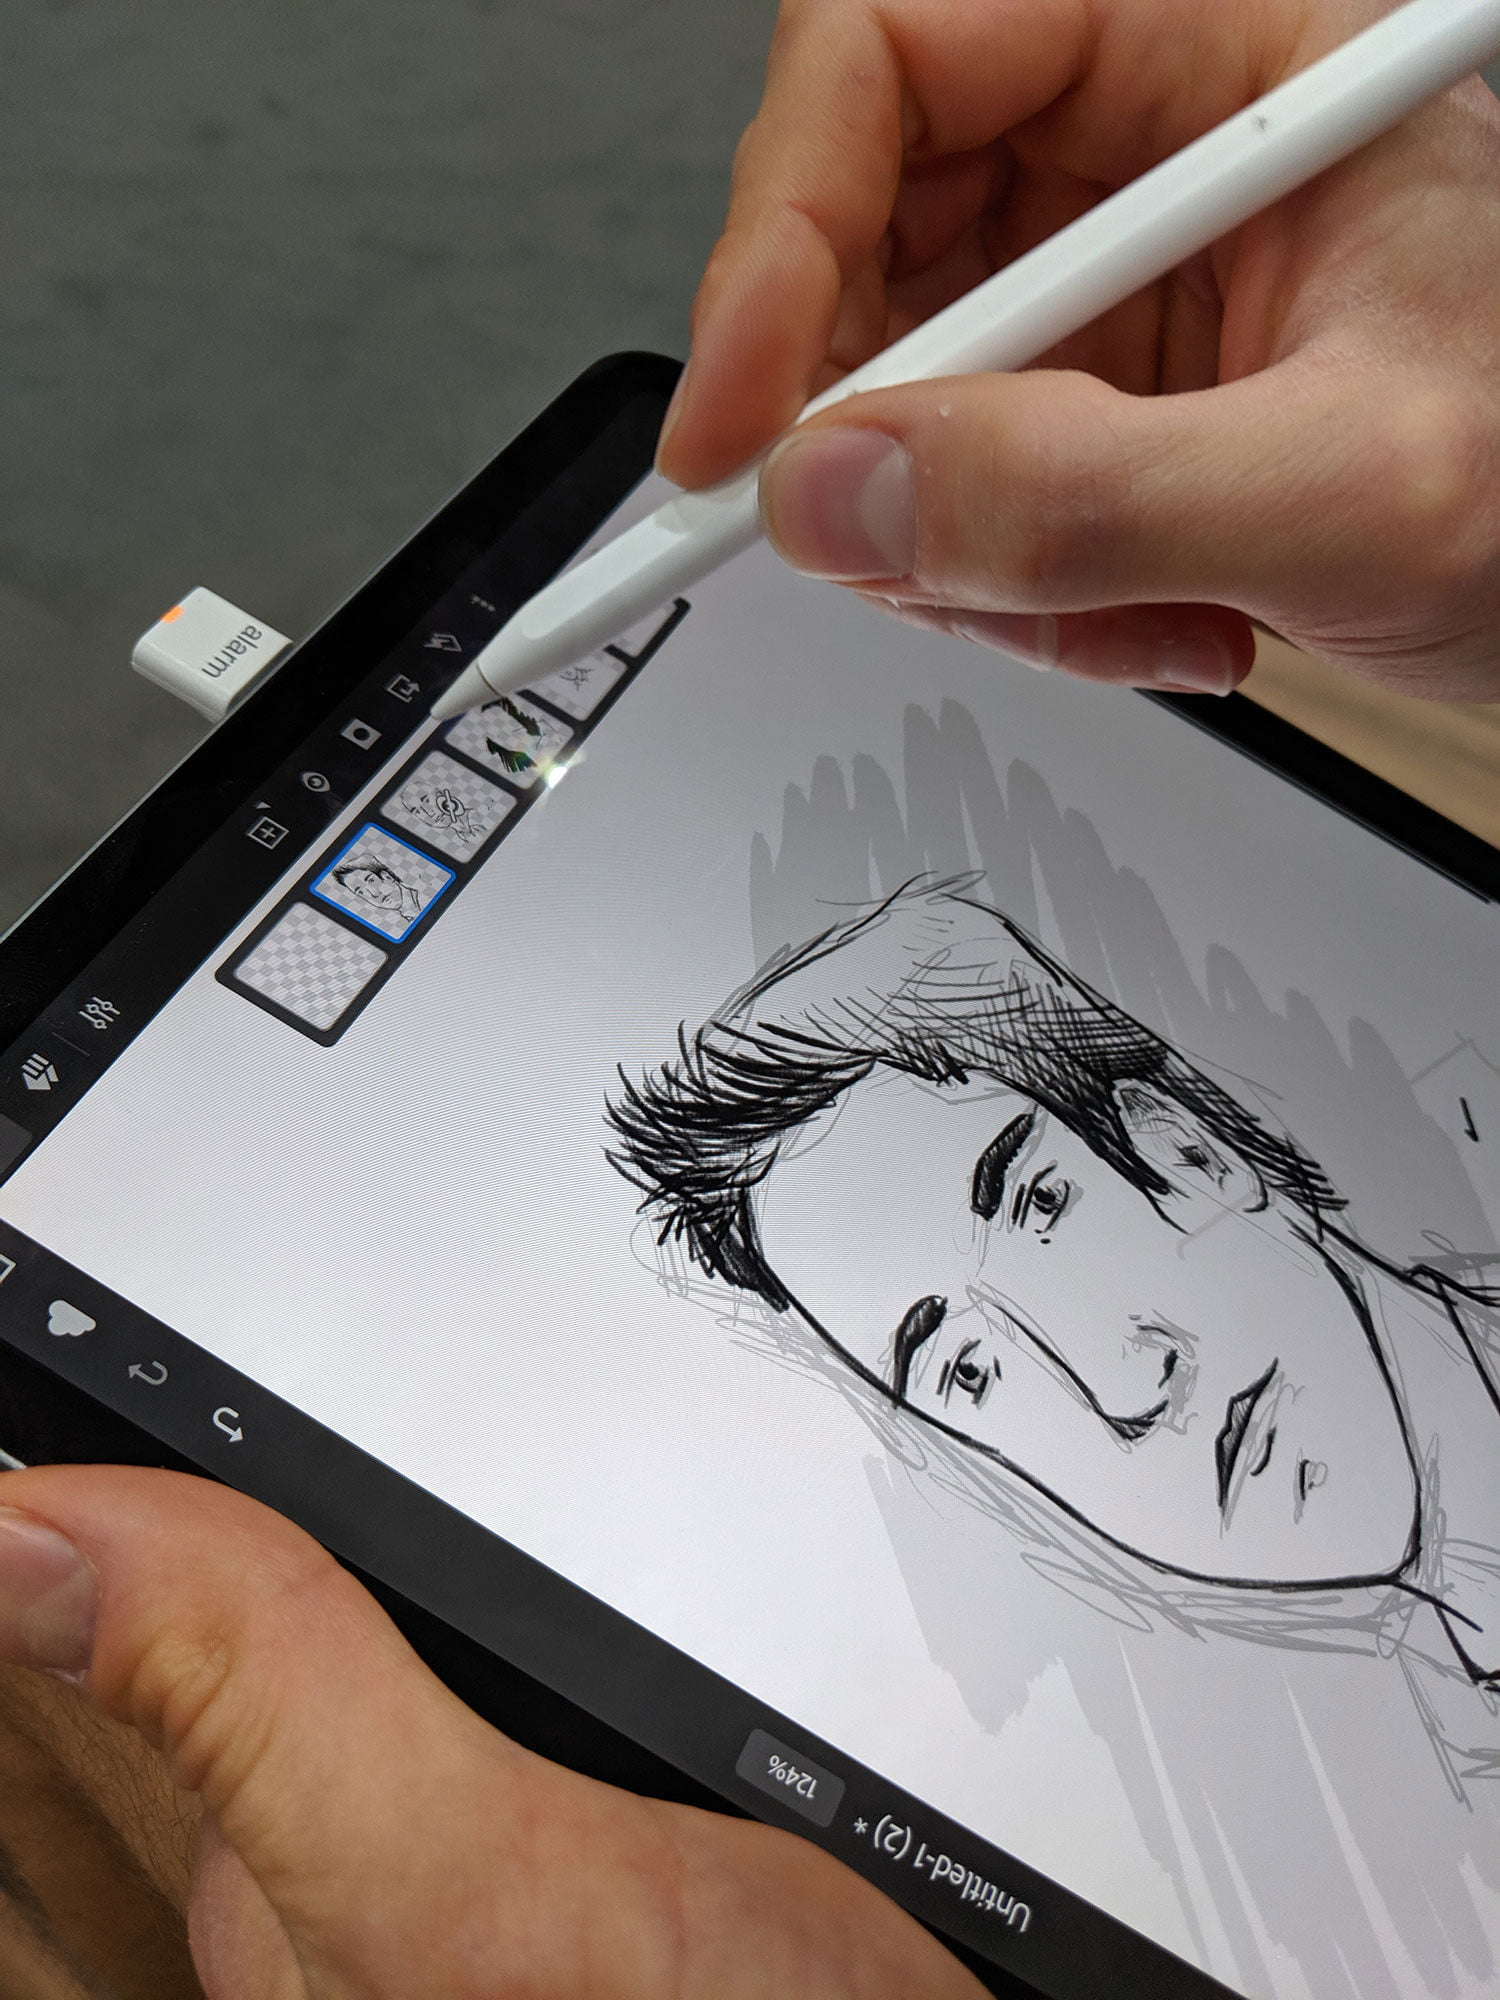 Adobe Illustrator will arrive on the iPad next year, following the launch of Photoshop